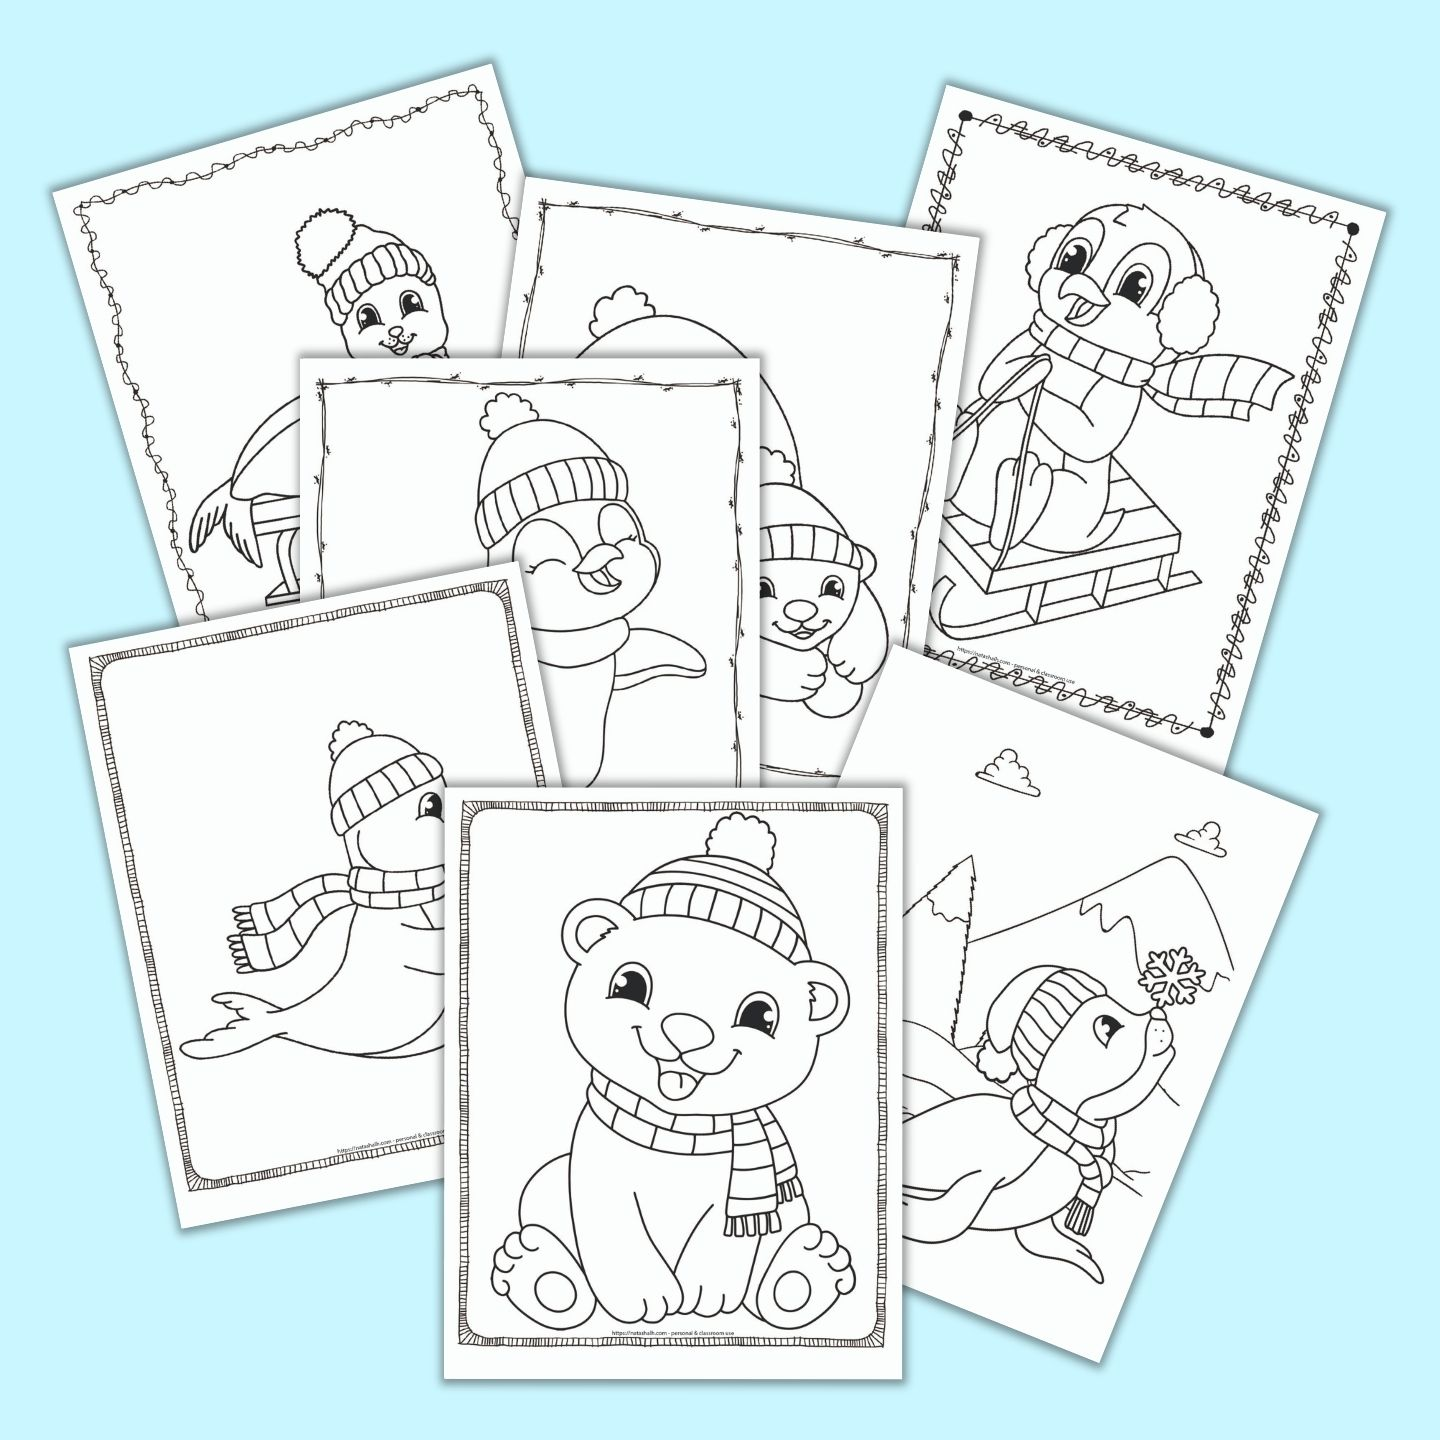 20 Free Printable Winter Animal Coloring Pages For Kids The Artisan Life